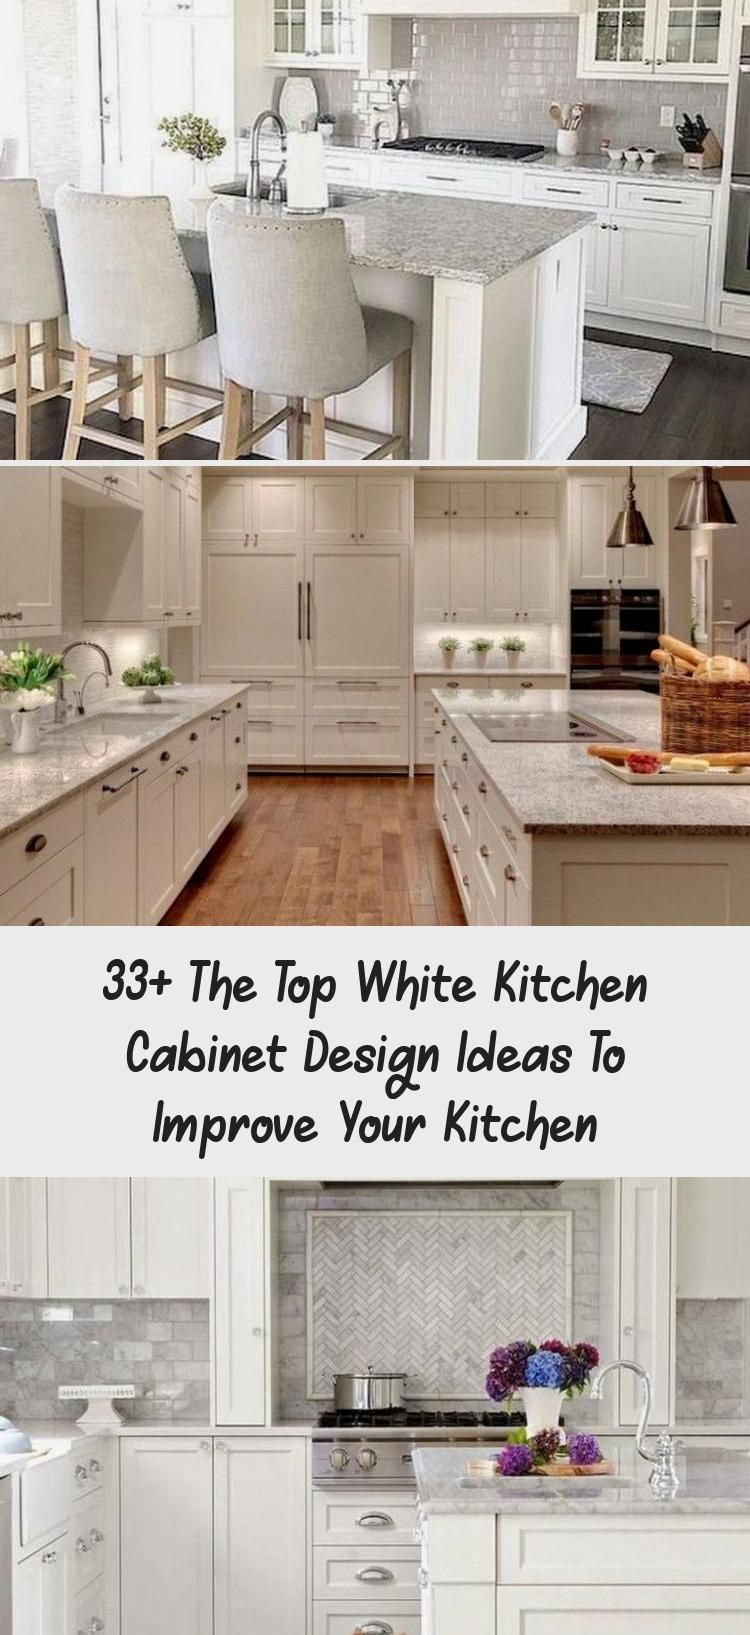 En Blog En Blog In 2020 Cabinet Design White Kitchen Cabinets Kitchen Cabinet Design